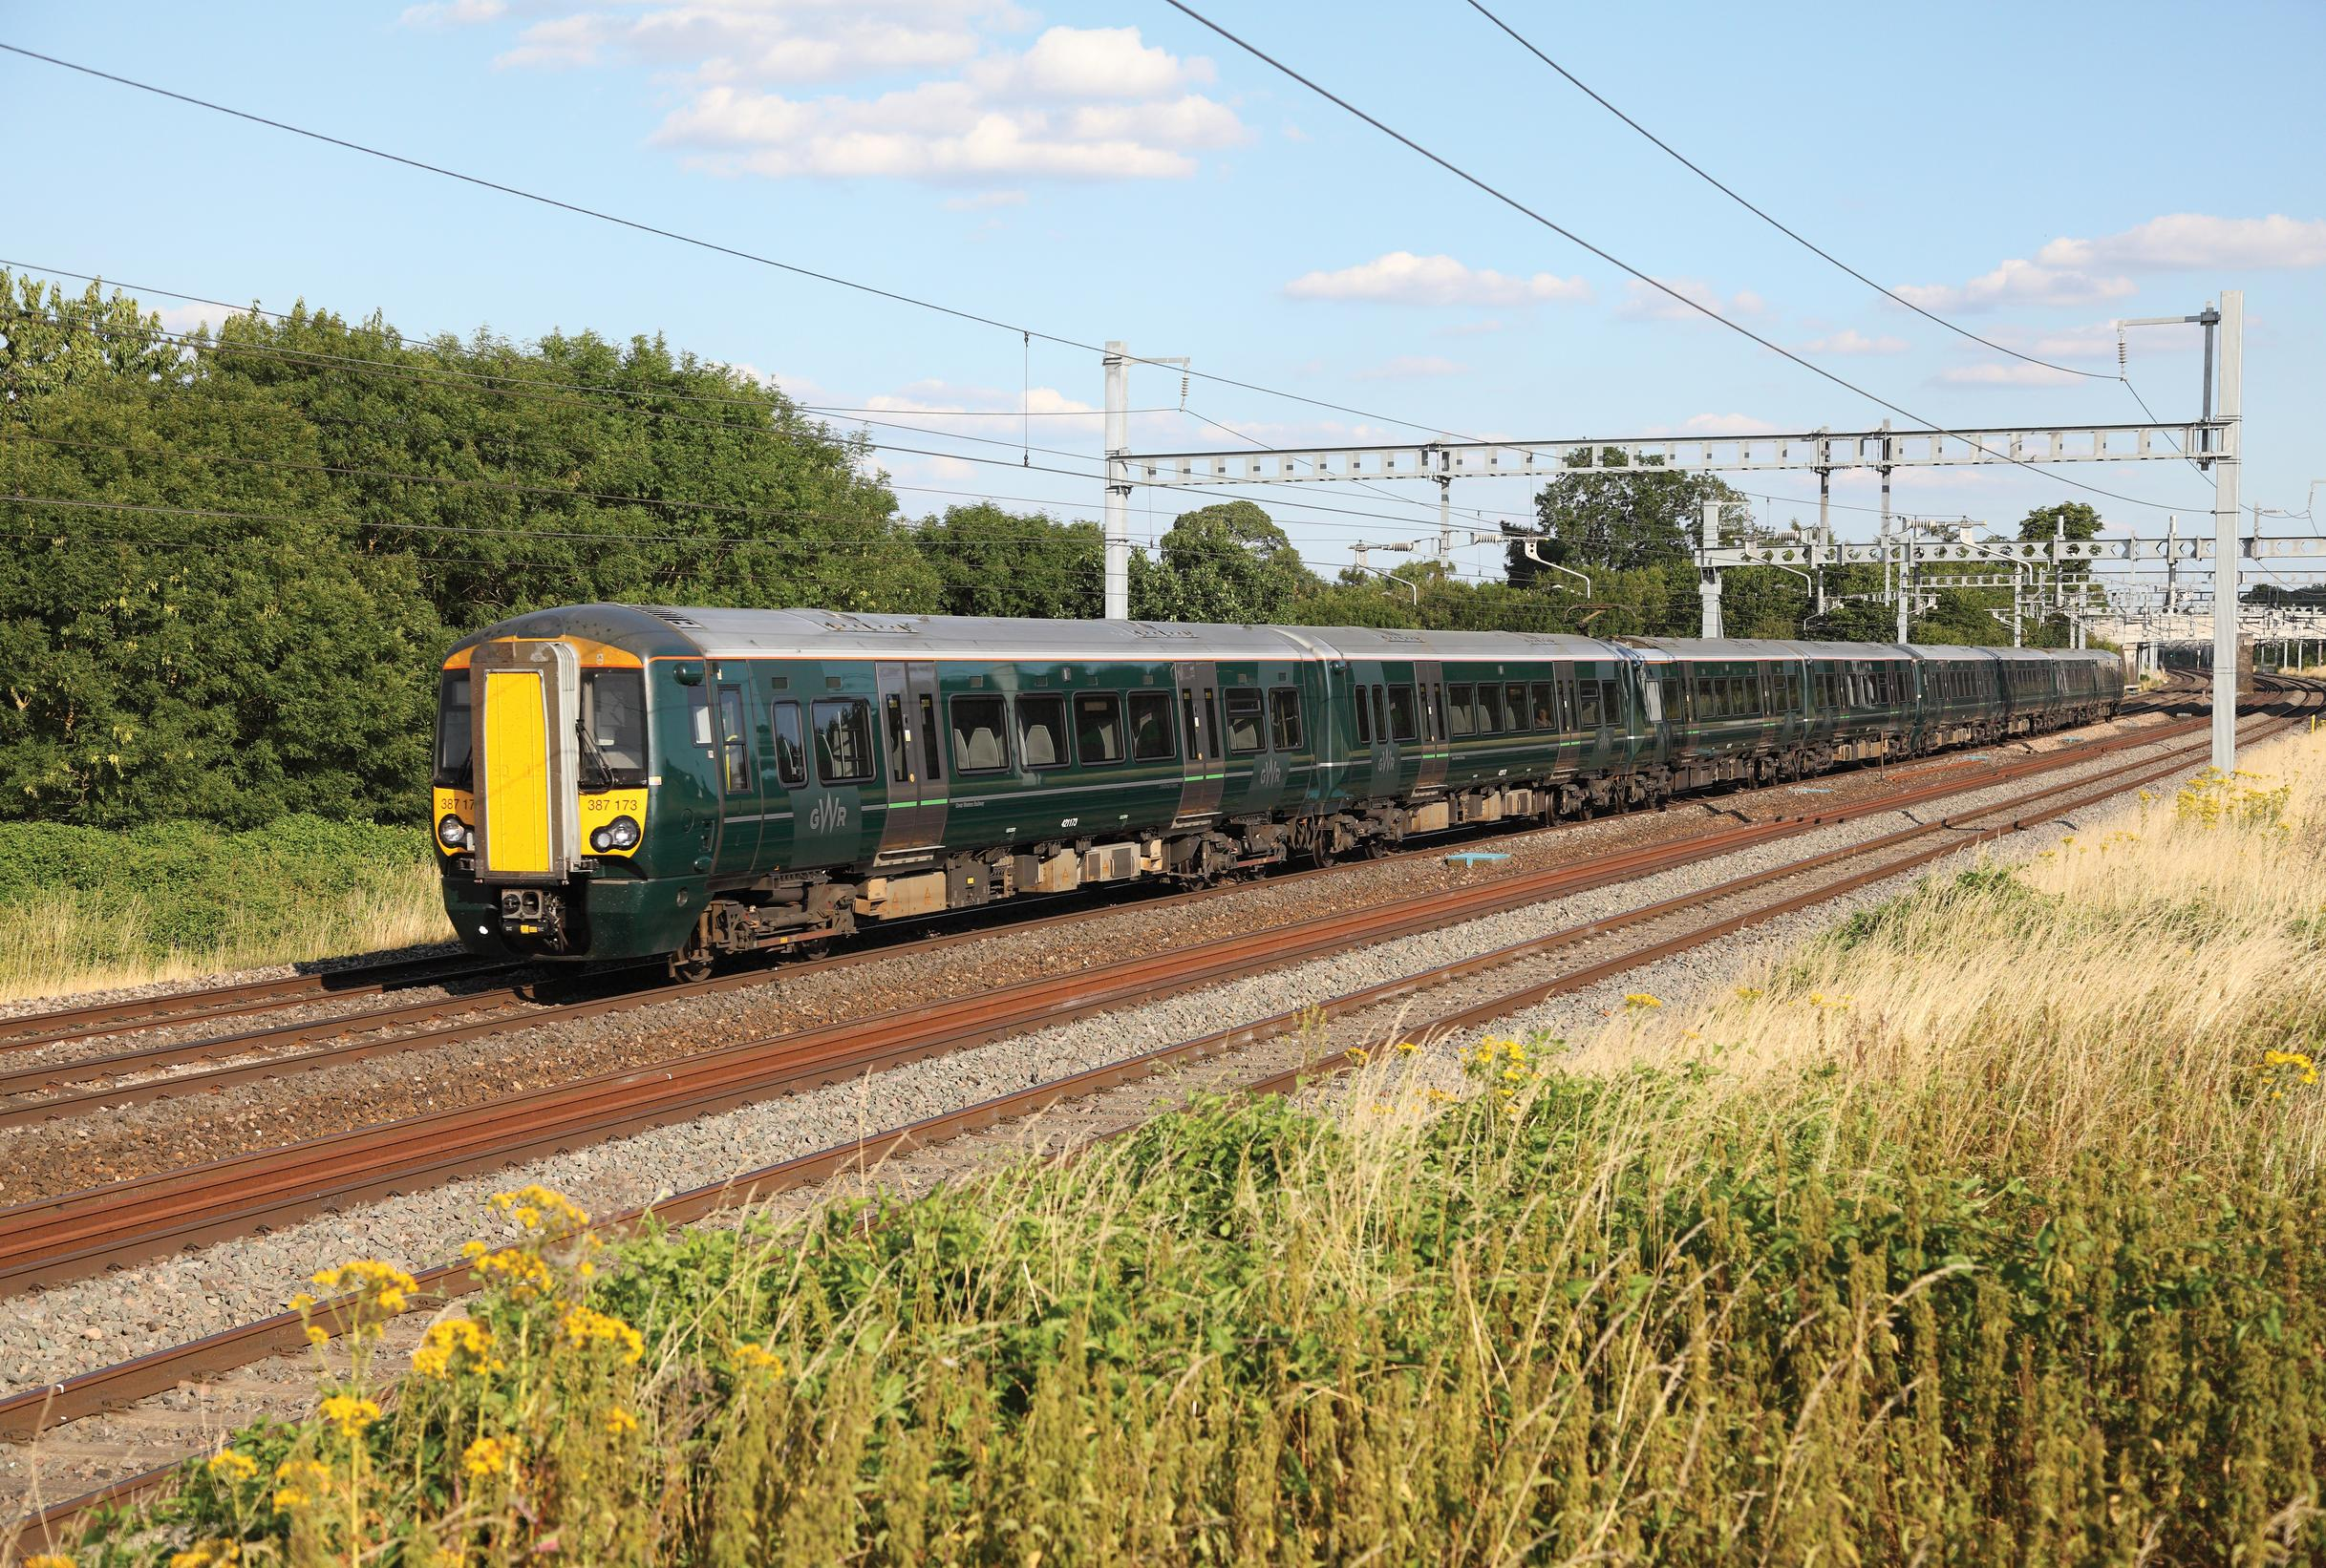 Grayling rejects splitting up GWR